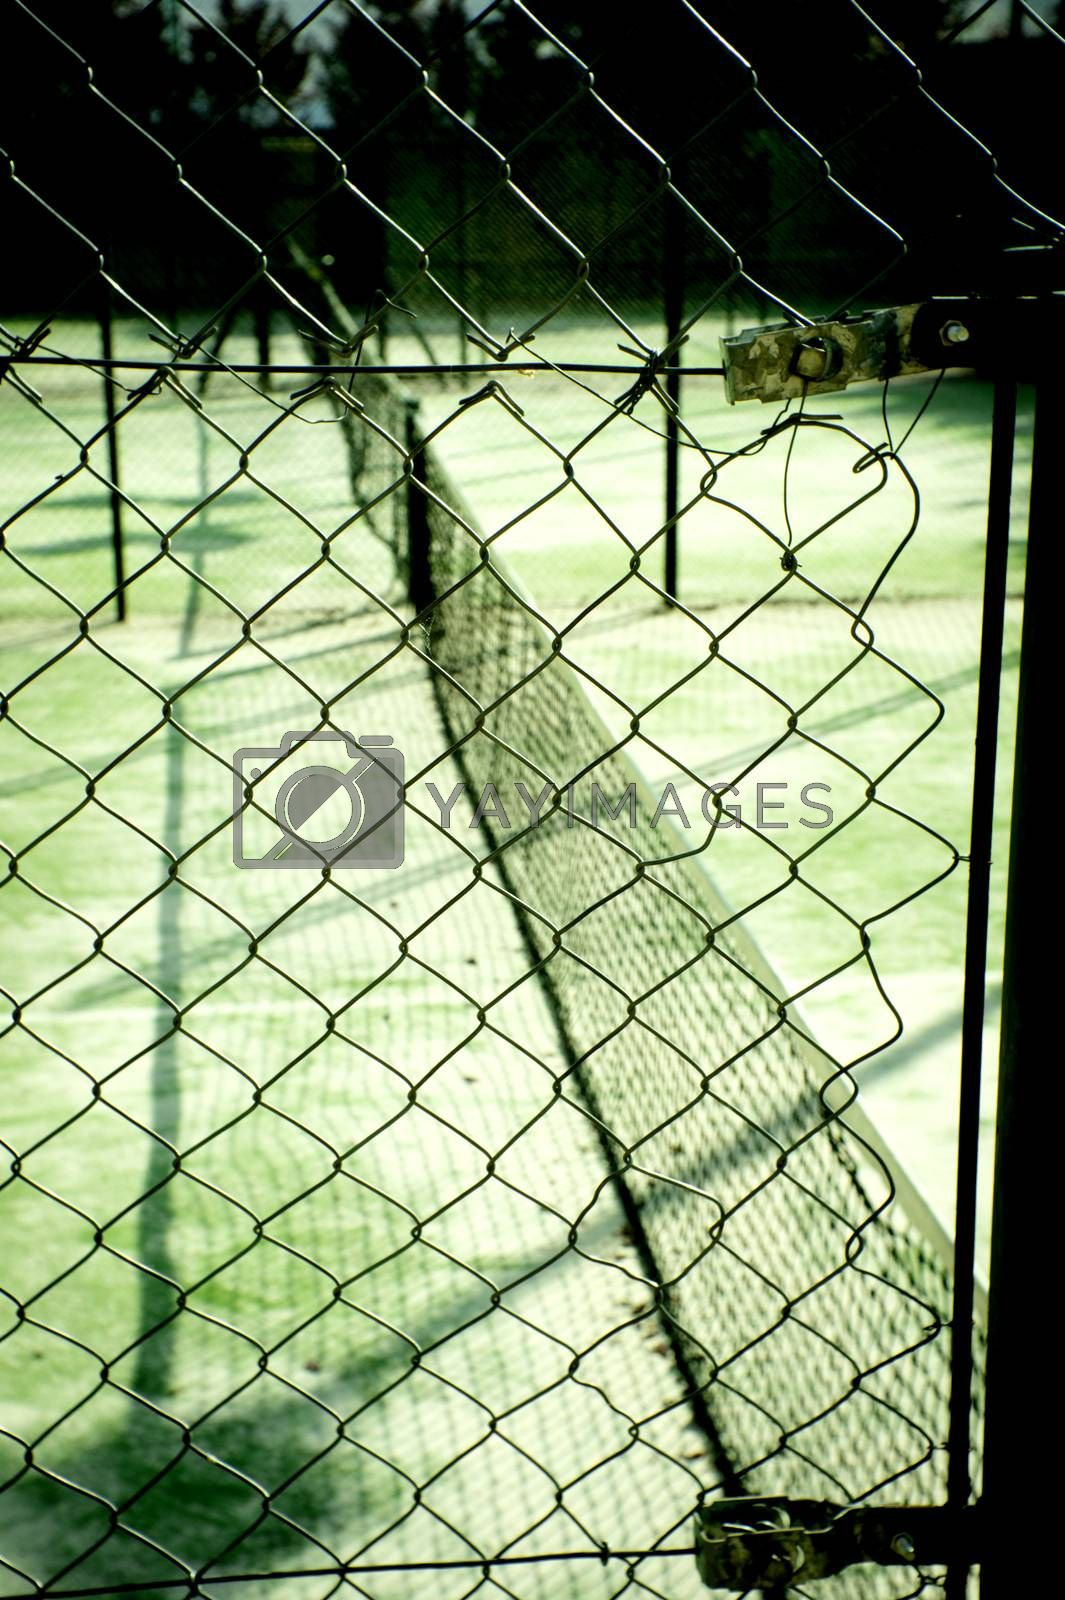 Abandoned tennis court. No people